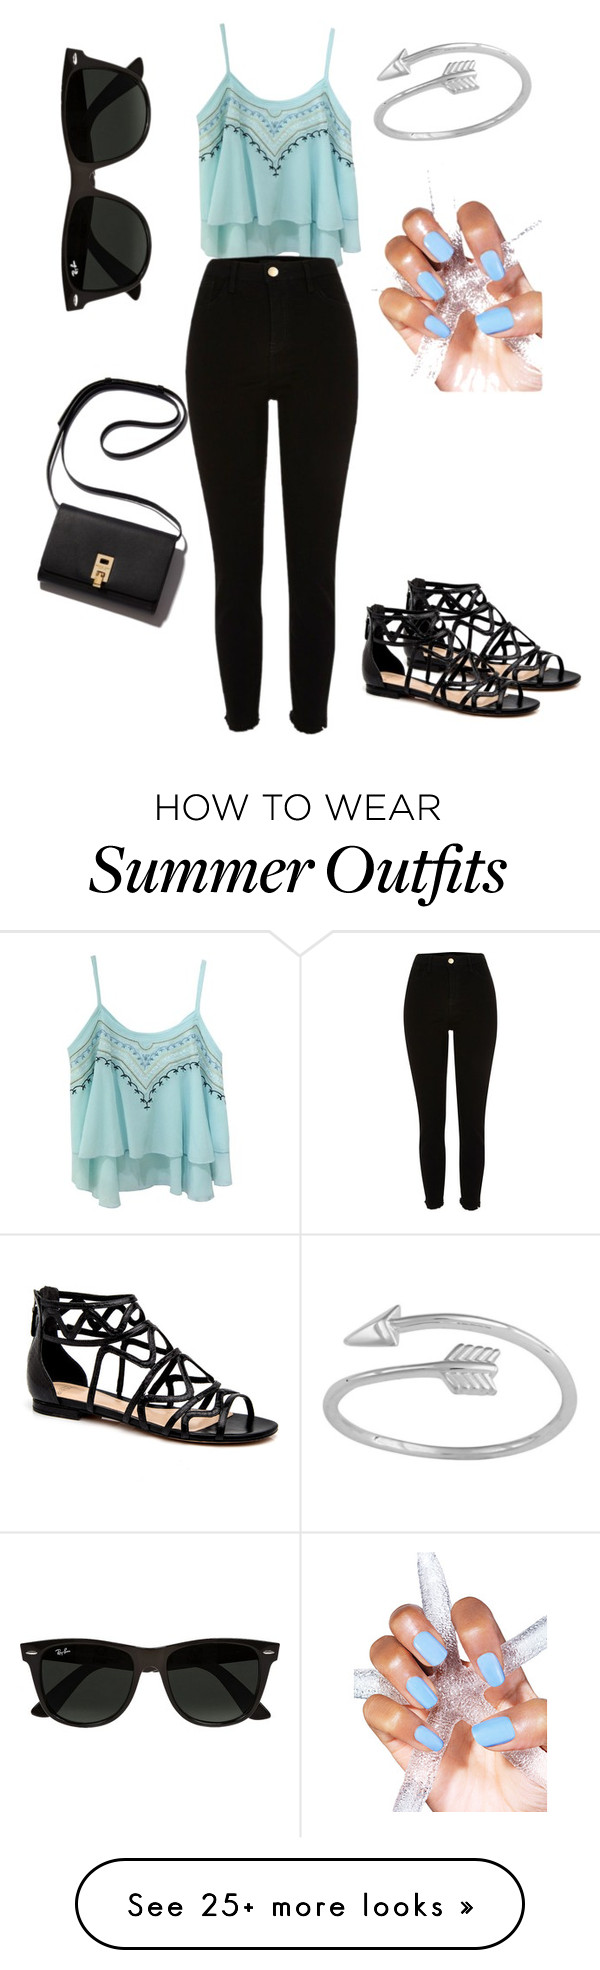 17ea86e7c839 fun summer outfit